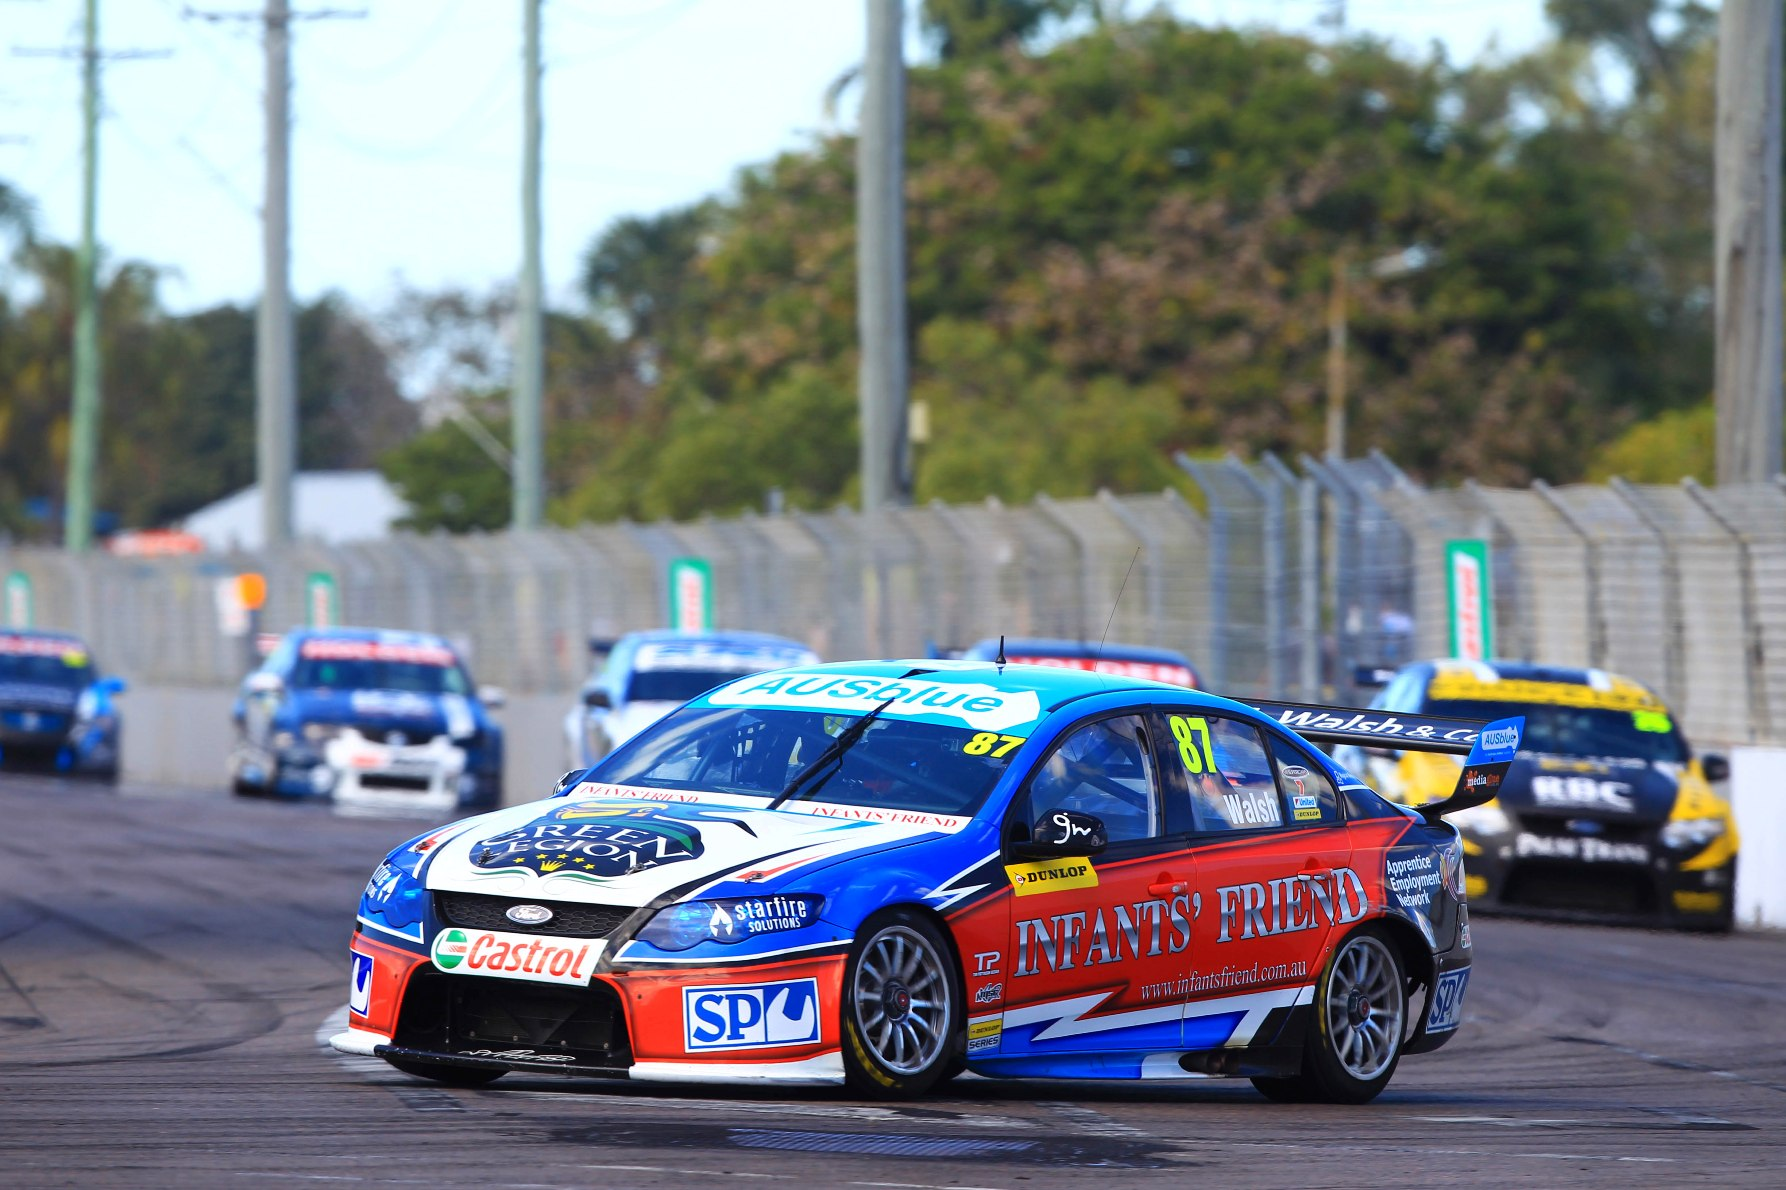 V8 Insiders Special – V8's Sold to Archer Capital